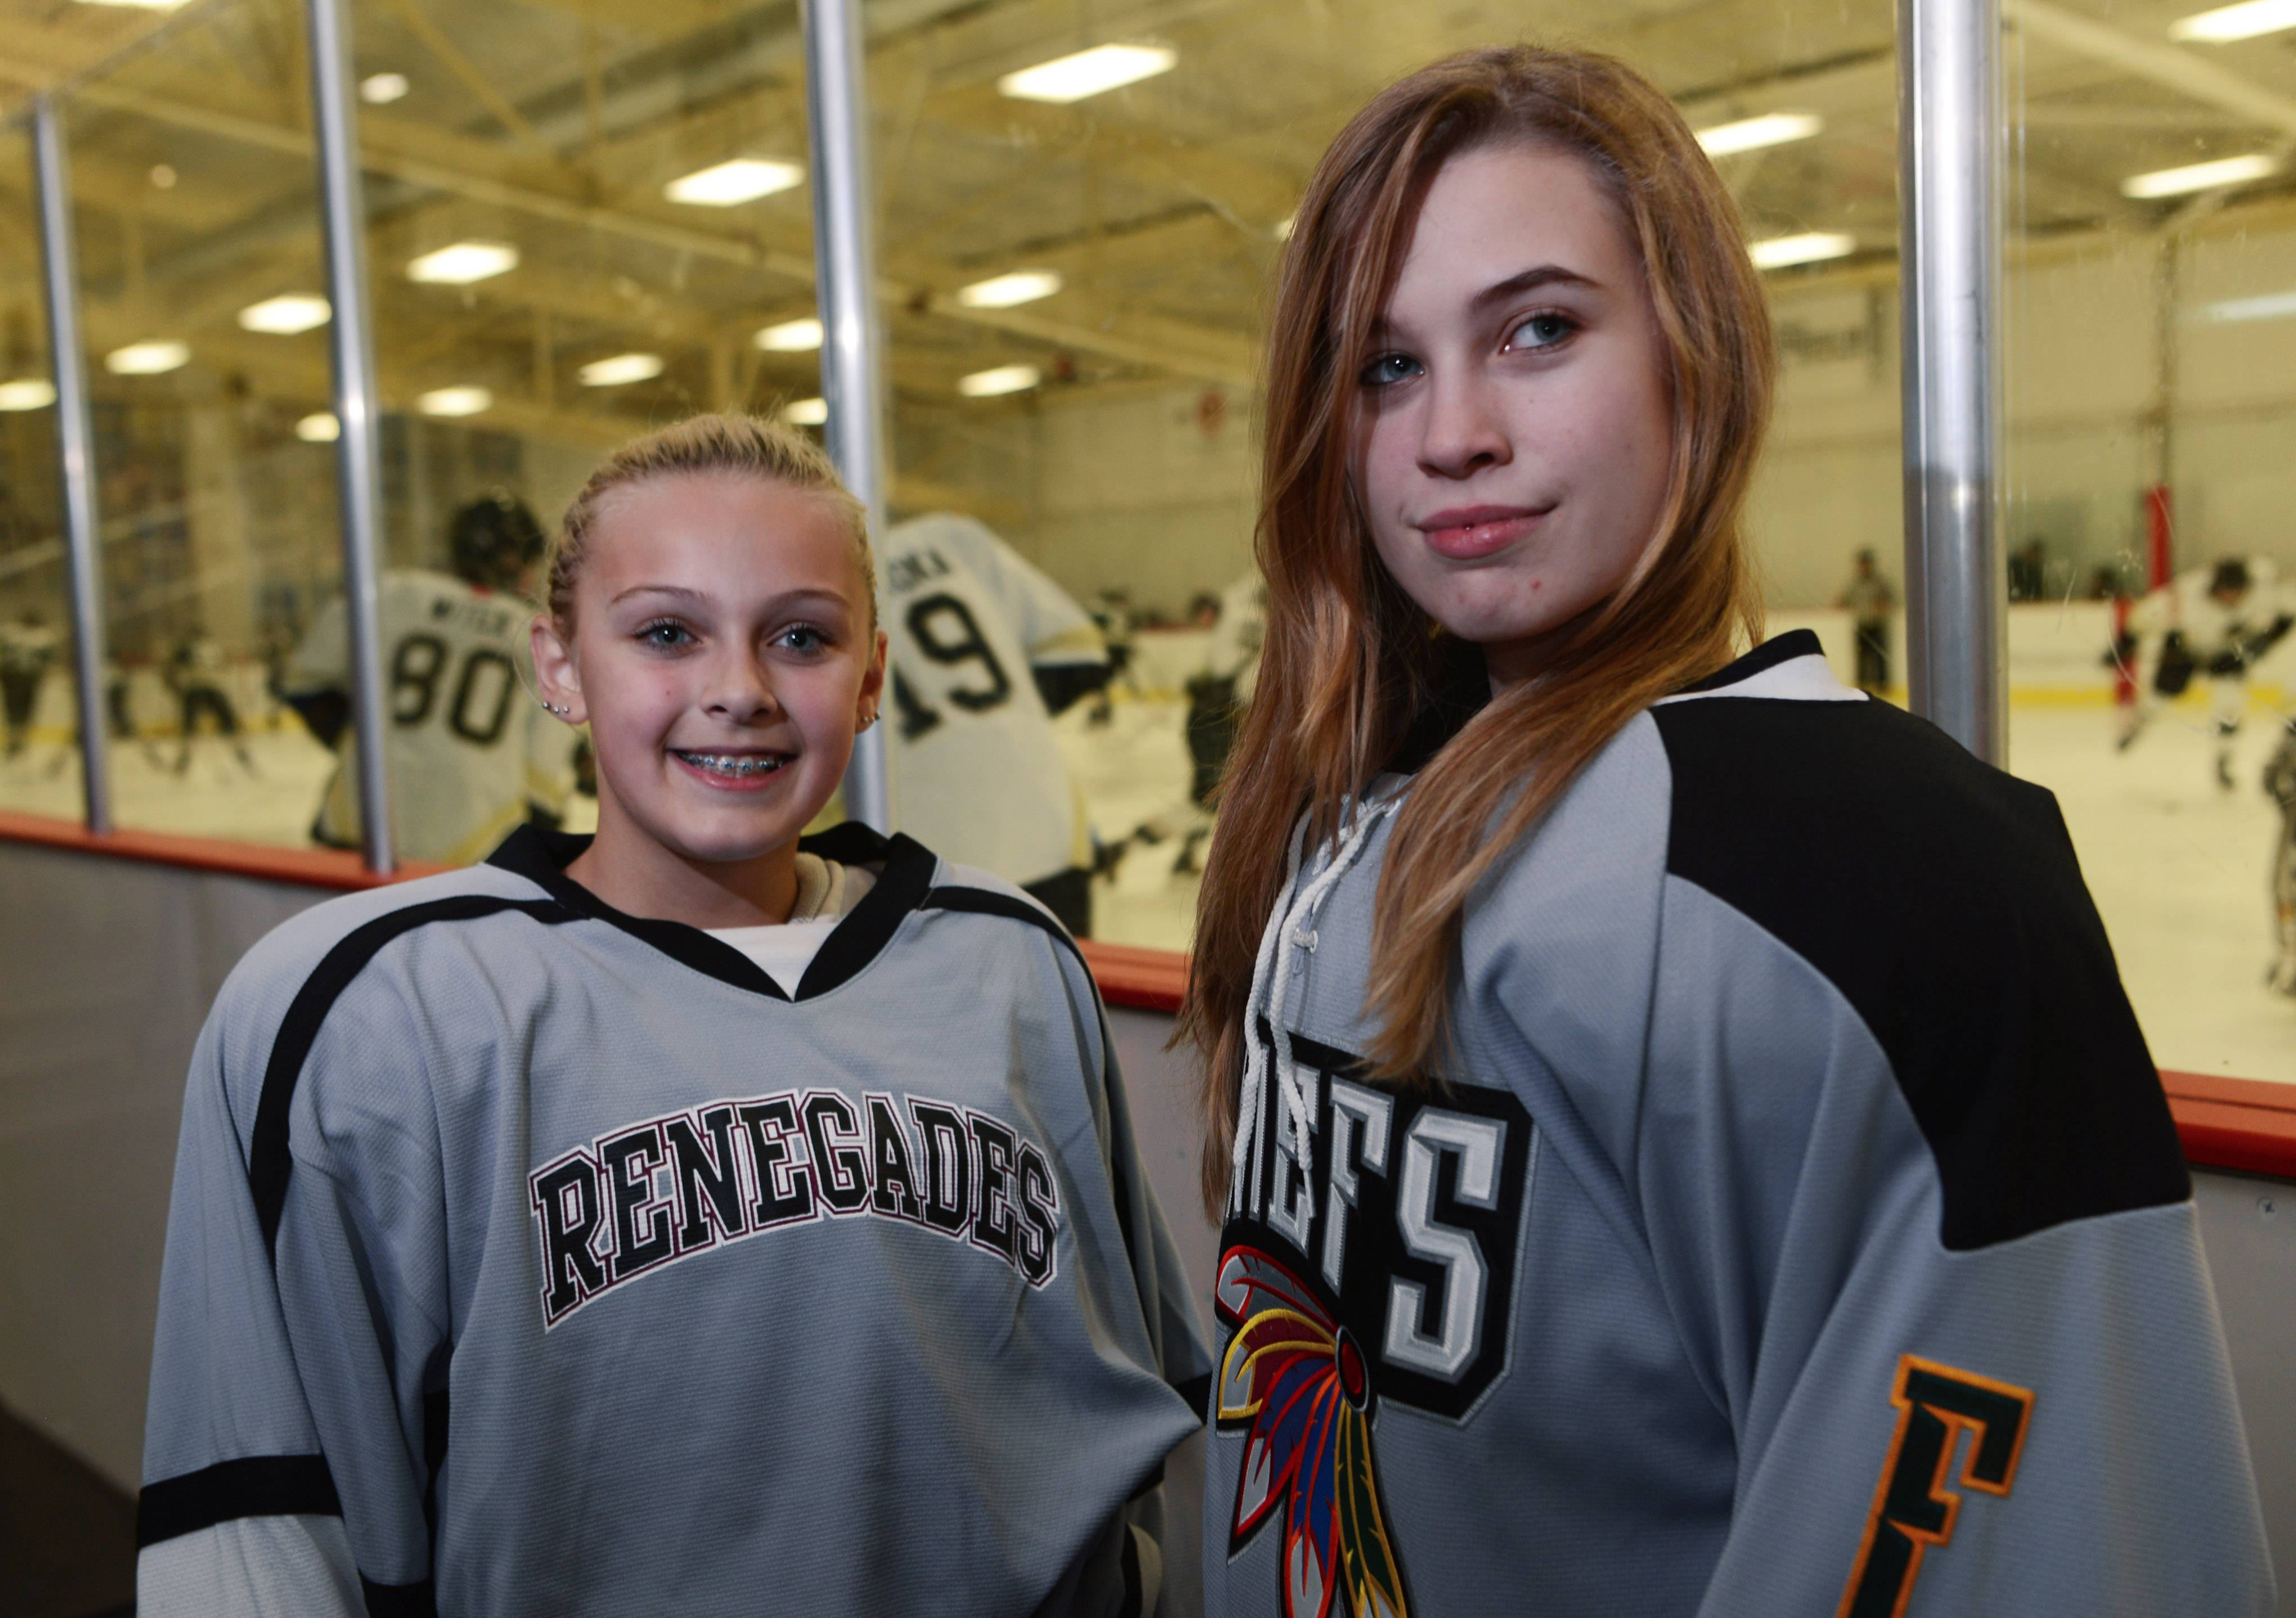 Eli Ternovits, 12, left, plays for a Rolling Meadows Renegades, while her sister, Drew, plays on a high school-level junior varsity team. Both girls play on teams that are otherwise all boys.